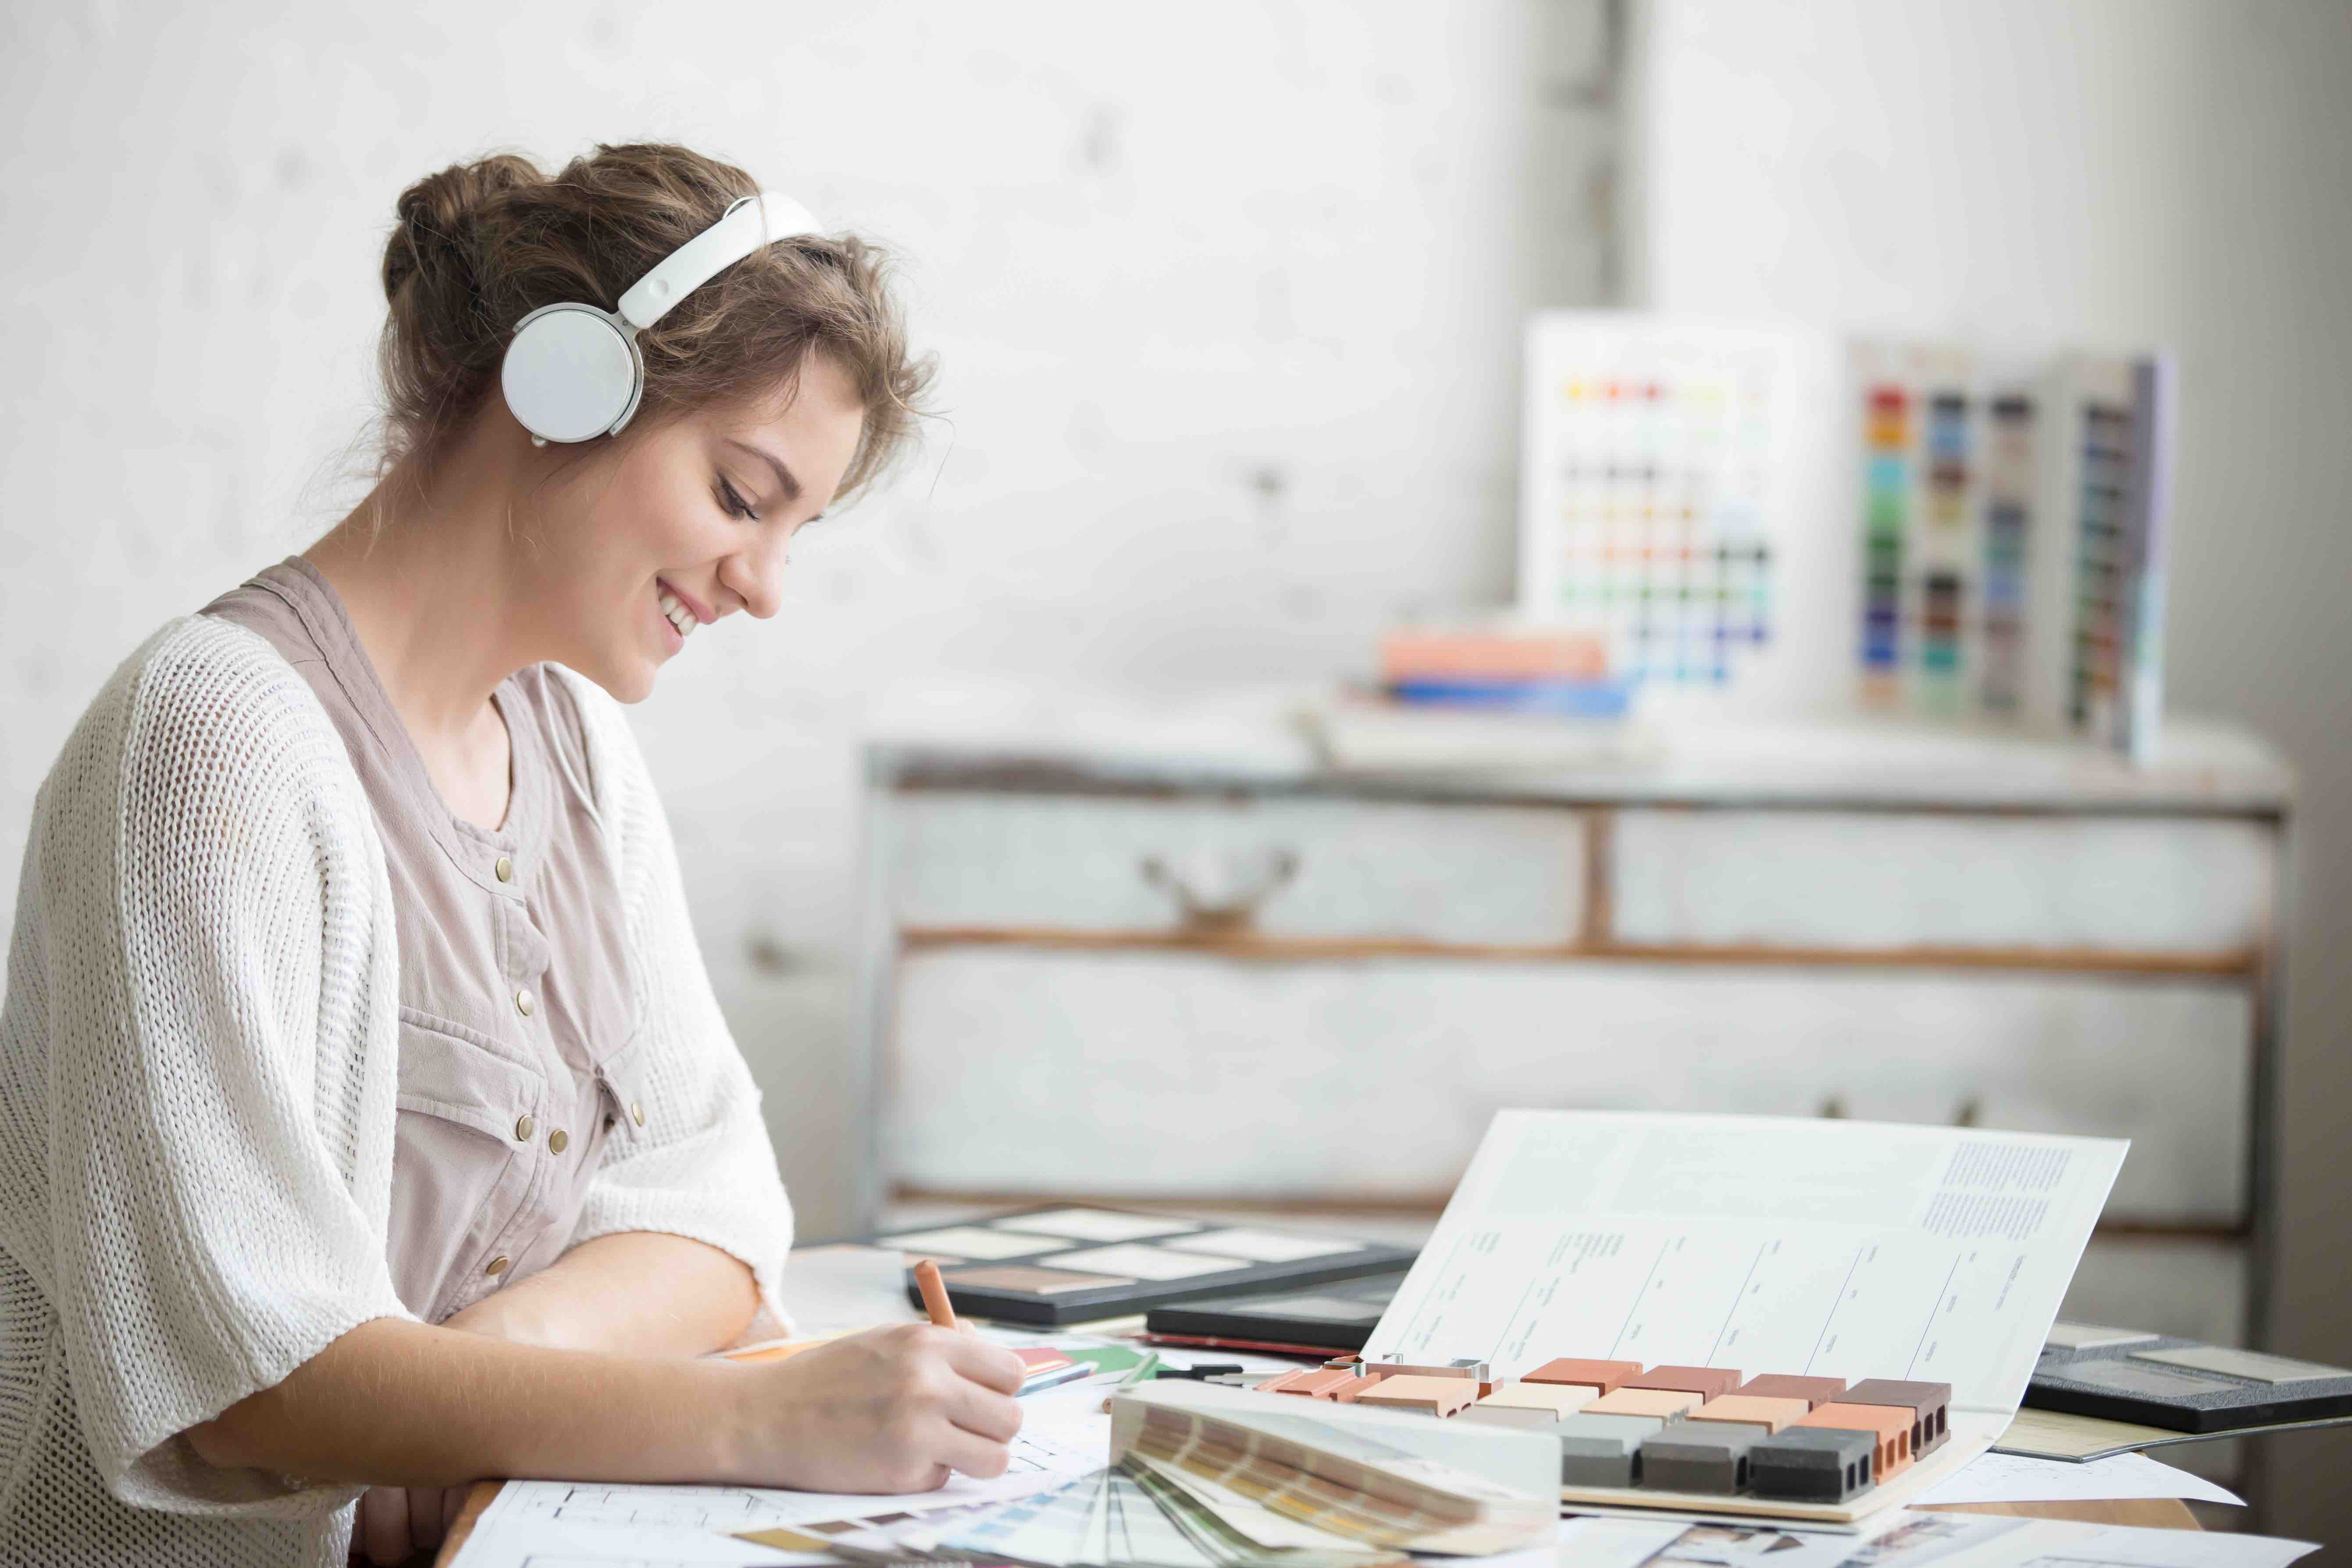 LightWorkers Does Music Boost Creativity? Start with These Music Suggestions to Find Out.